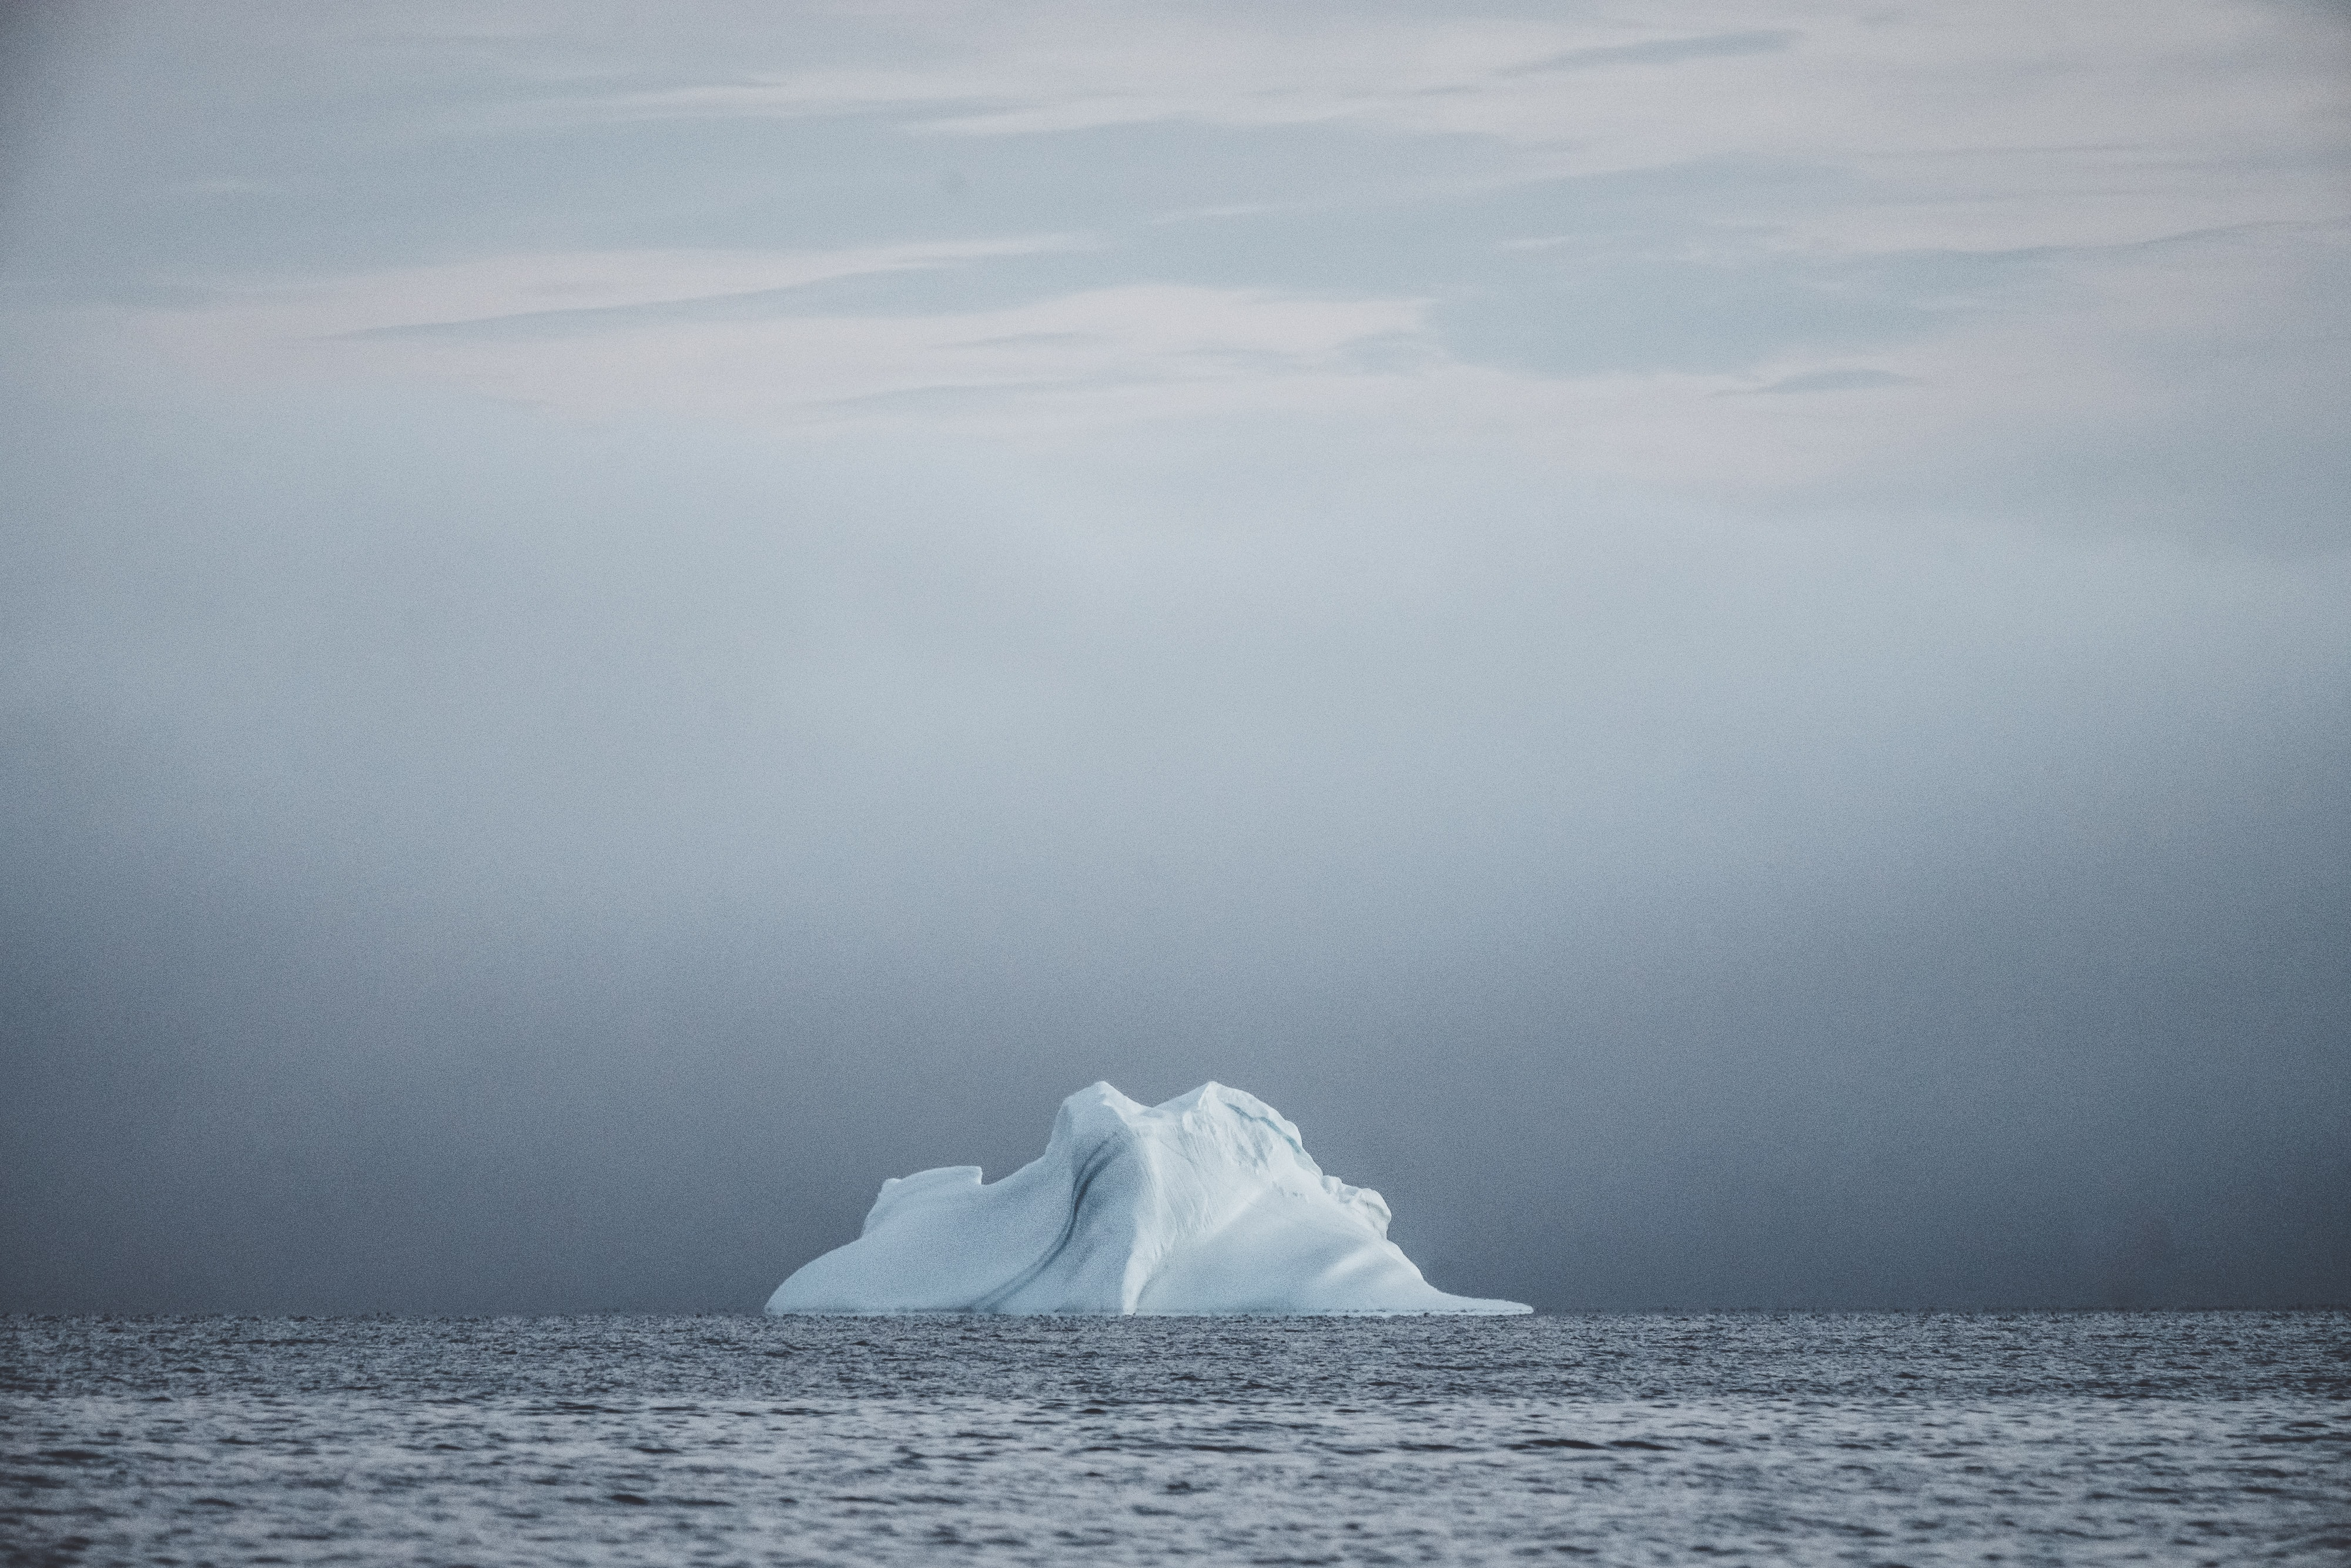 iceberg on body of water